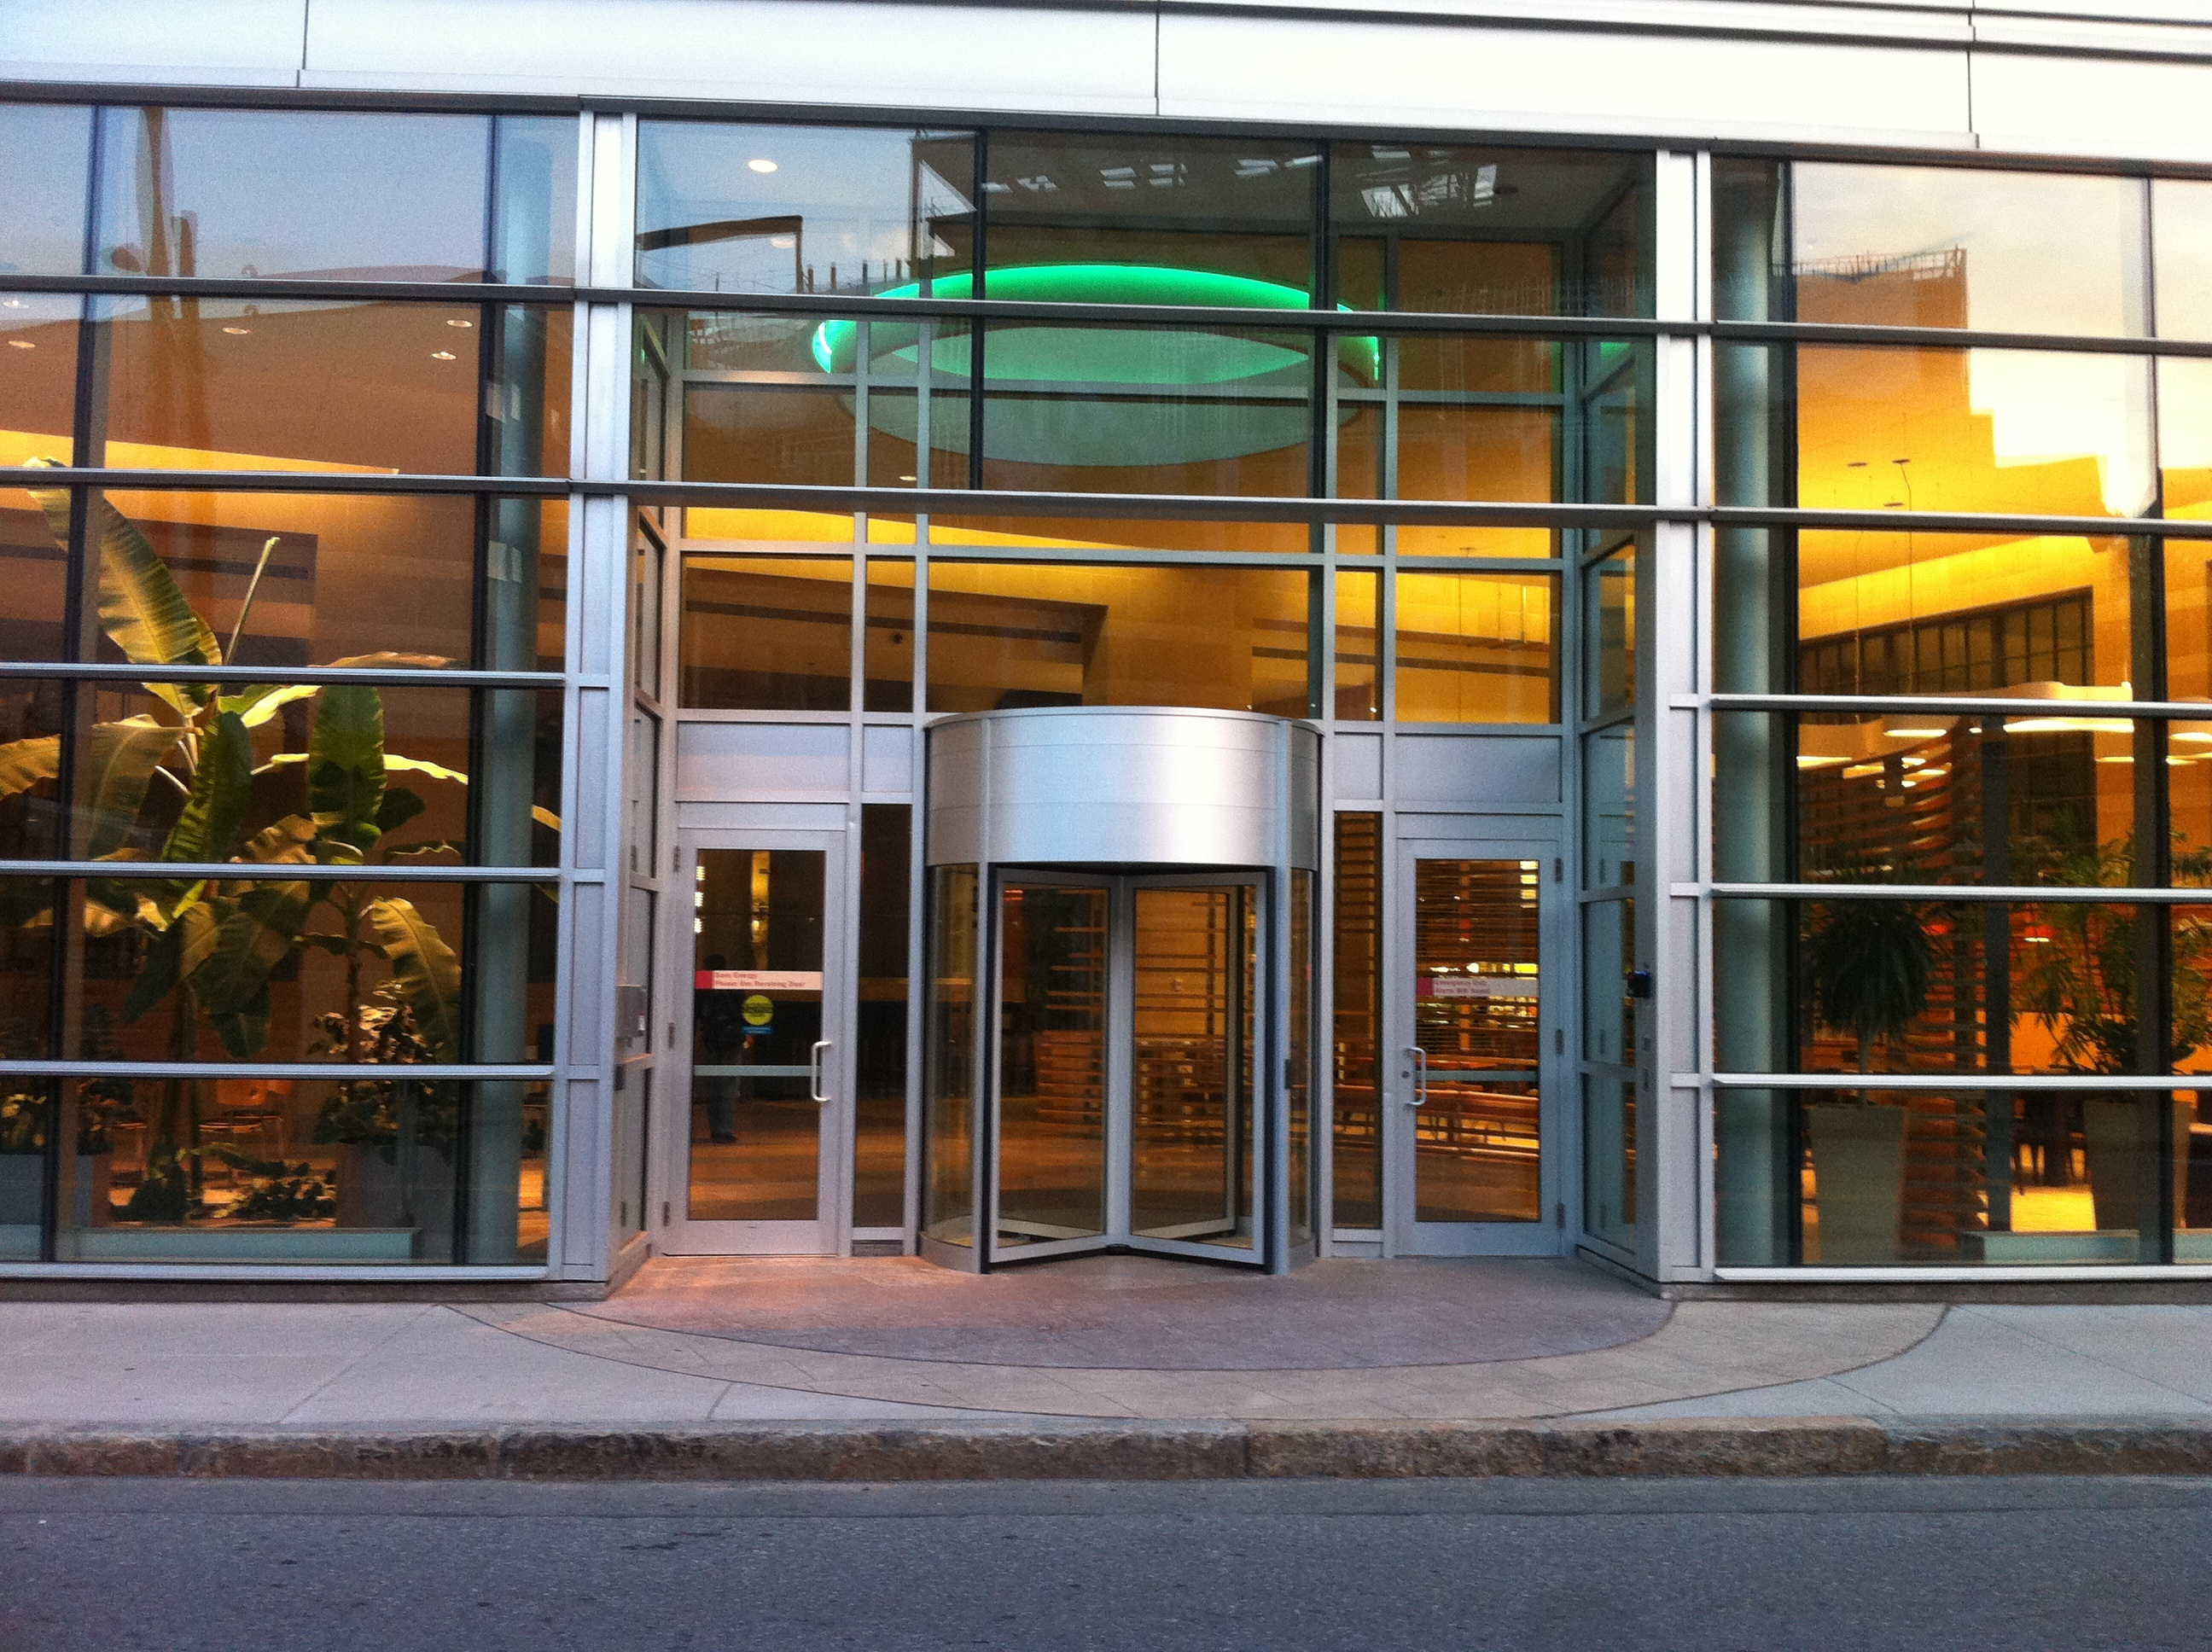 Revolving doors require there be a swinging or sliding door within 10 feet on the same building plane